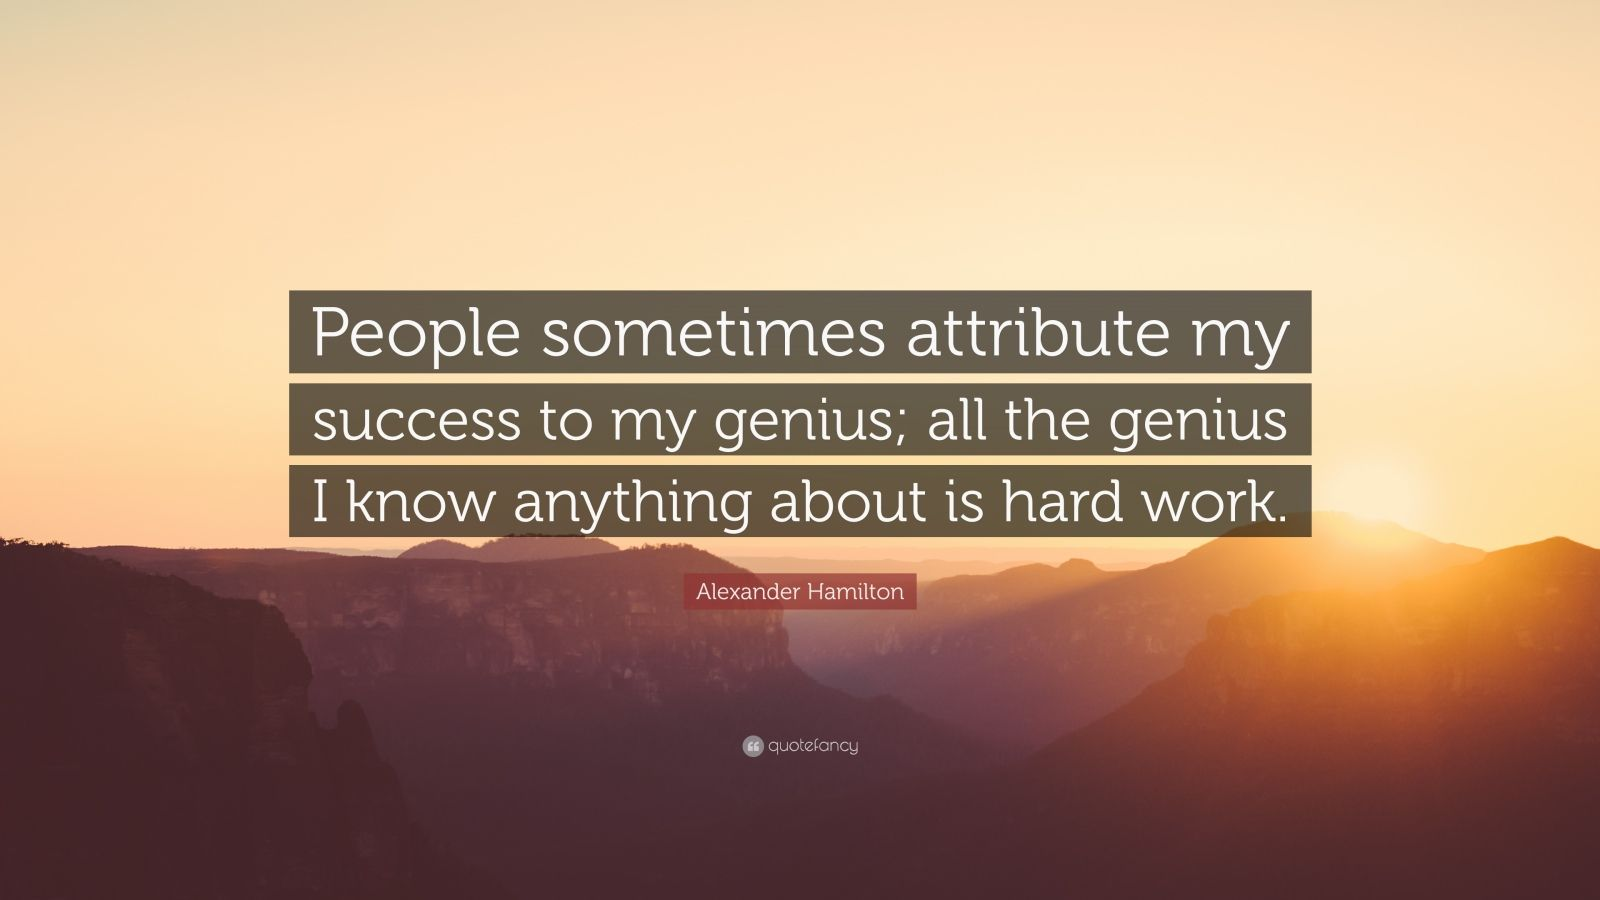 Alexander Hamilton Quote People Sometimes Attribute My Success To My Genius All The Genius I Know Anything About Is Hard Work 12 Wallpapers Quotefancy